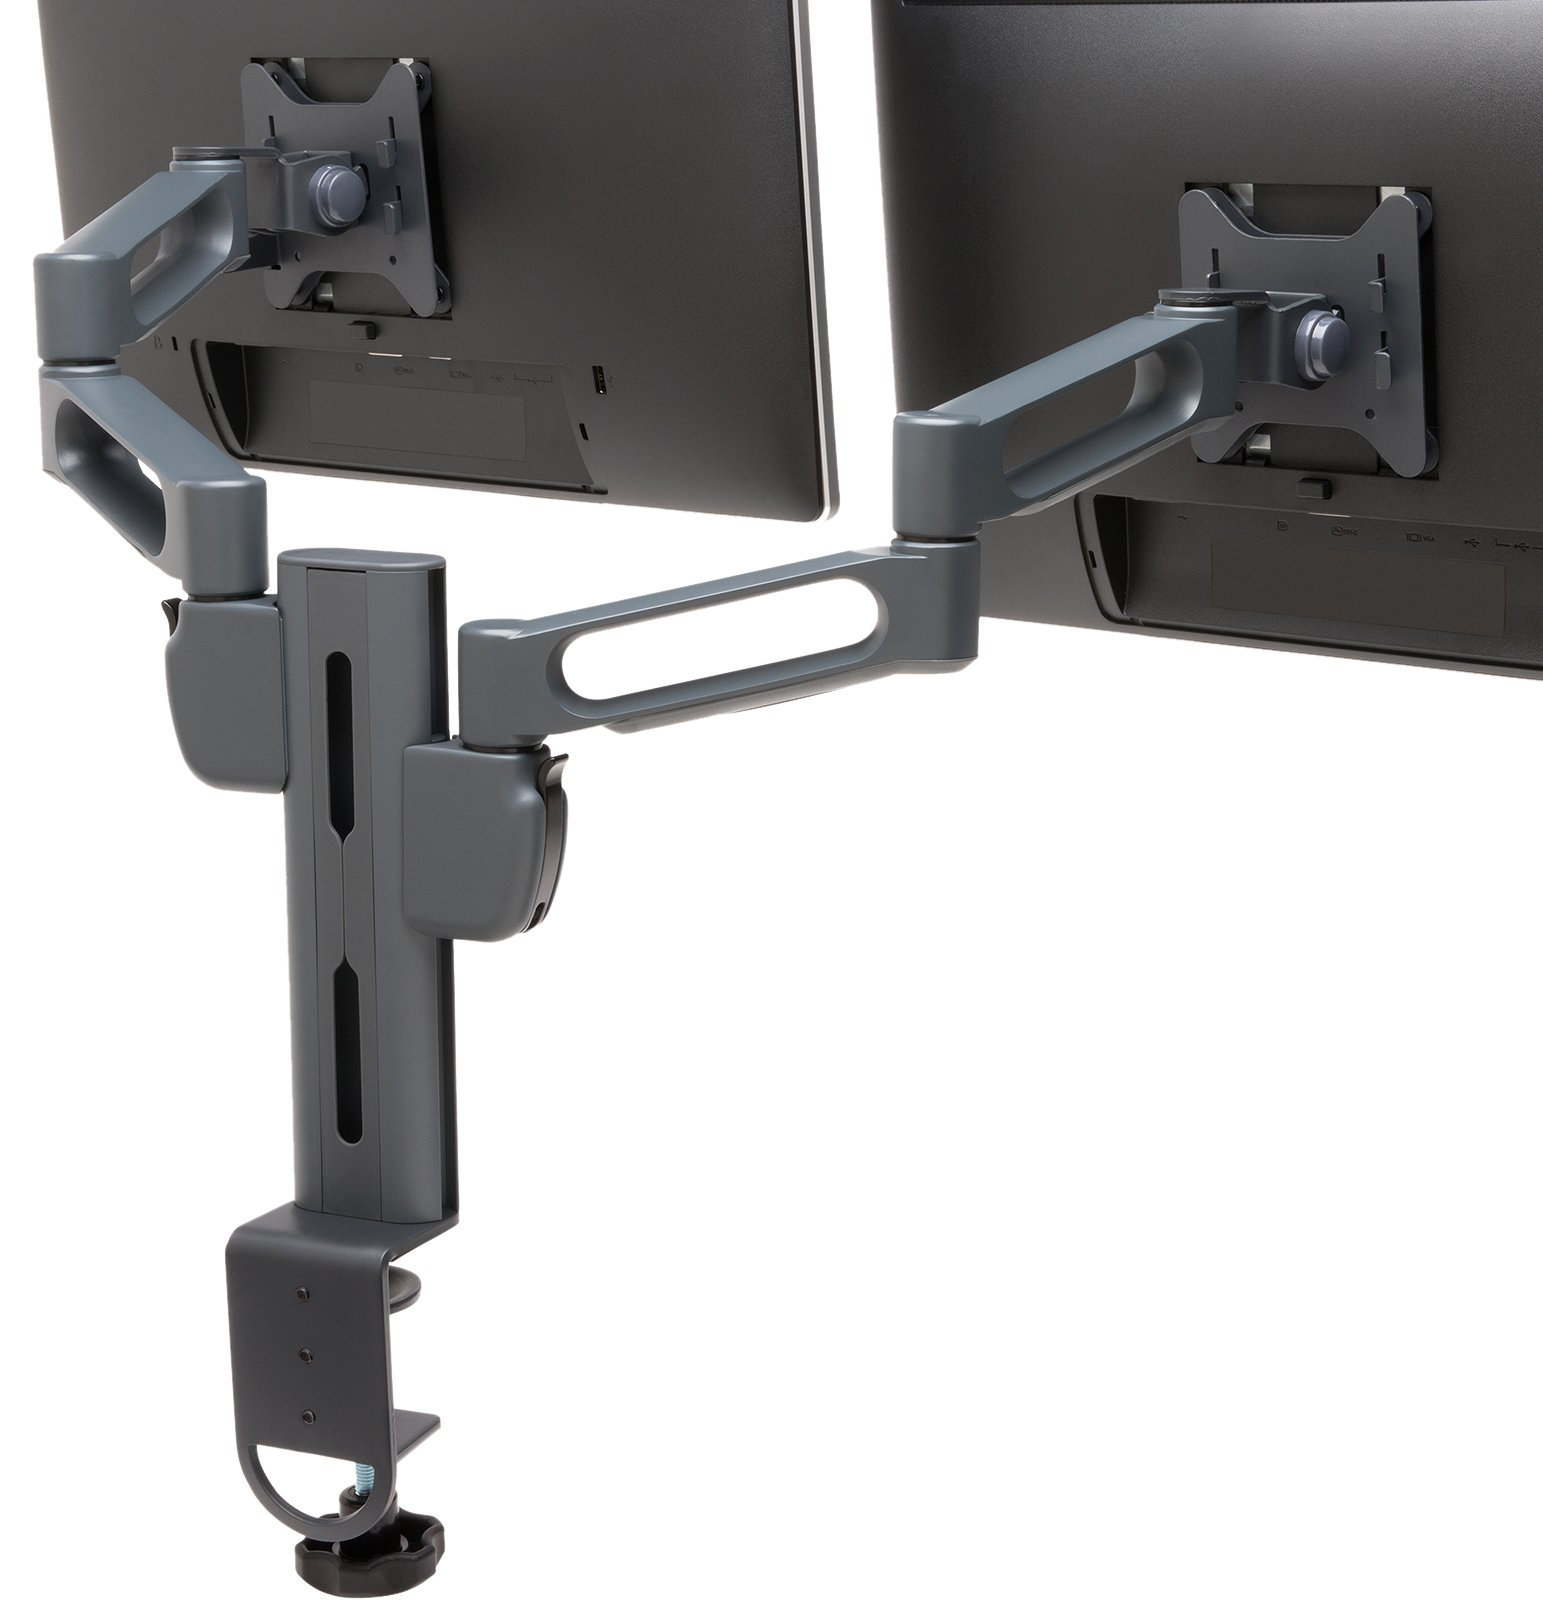 Kensington SmartFit Ergonomic Dual Monitor Pivoting Arm Mount (K60273WW) by Kensington